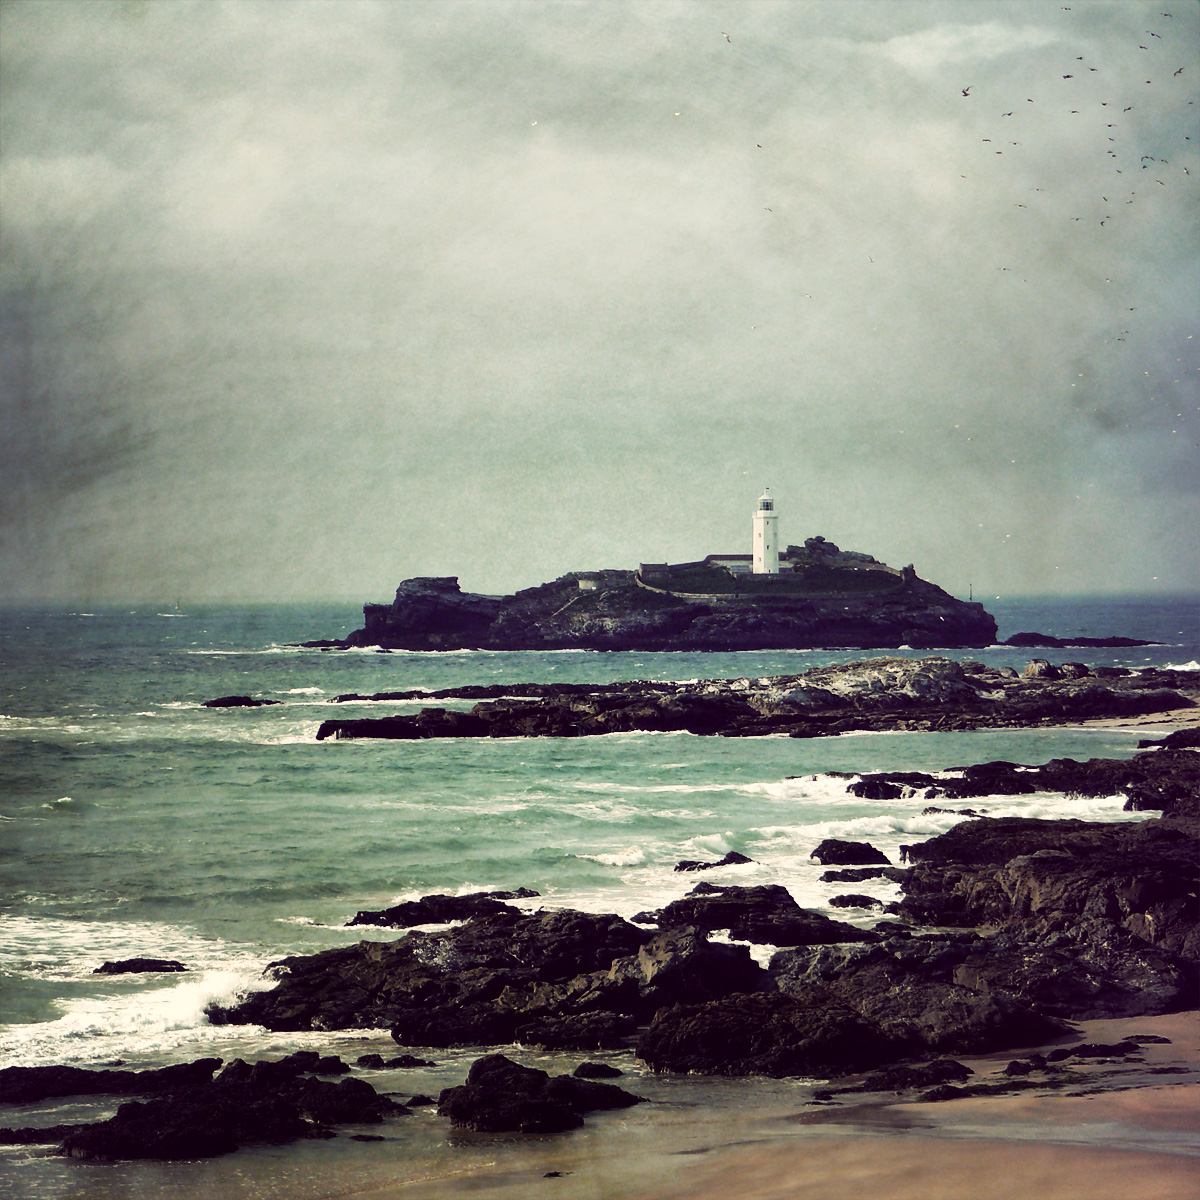 Godrevy Lighthouse, St. Ives Bay, Cornwall, UK where Woolf's family rented a summer cottage during her childhood and the fictionalised setting of  To the Lighthouse, Artist Unknown.